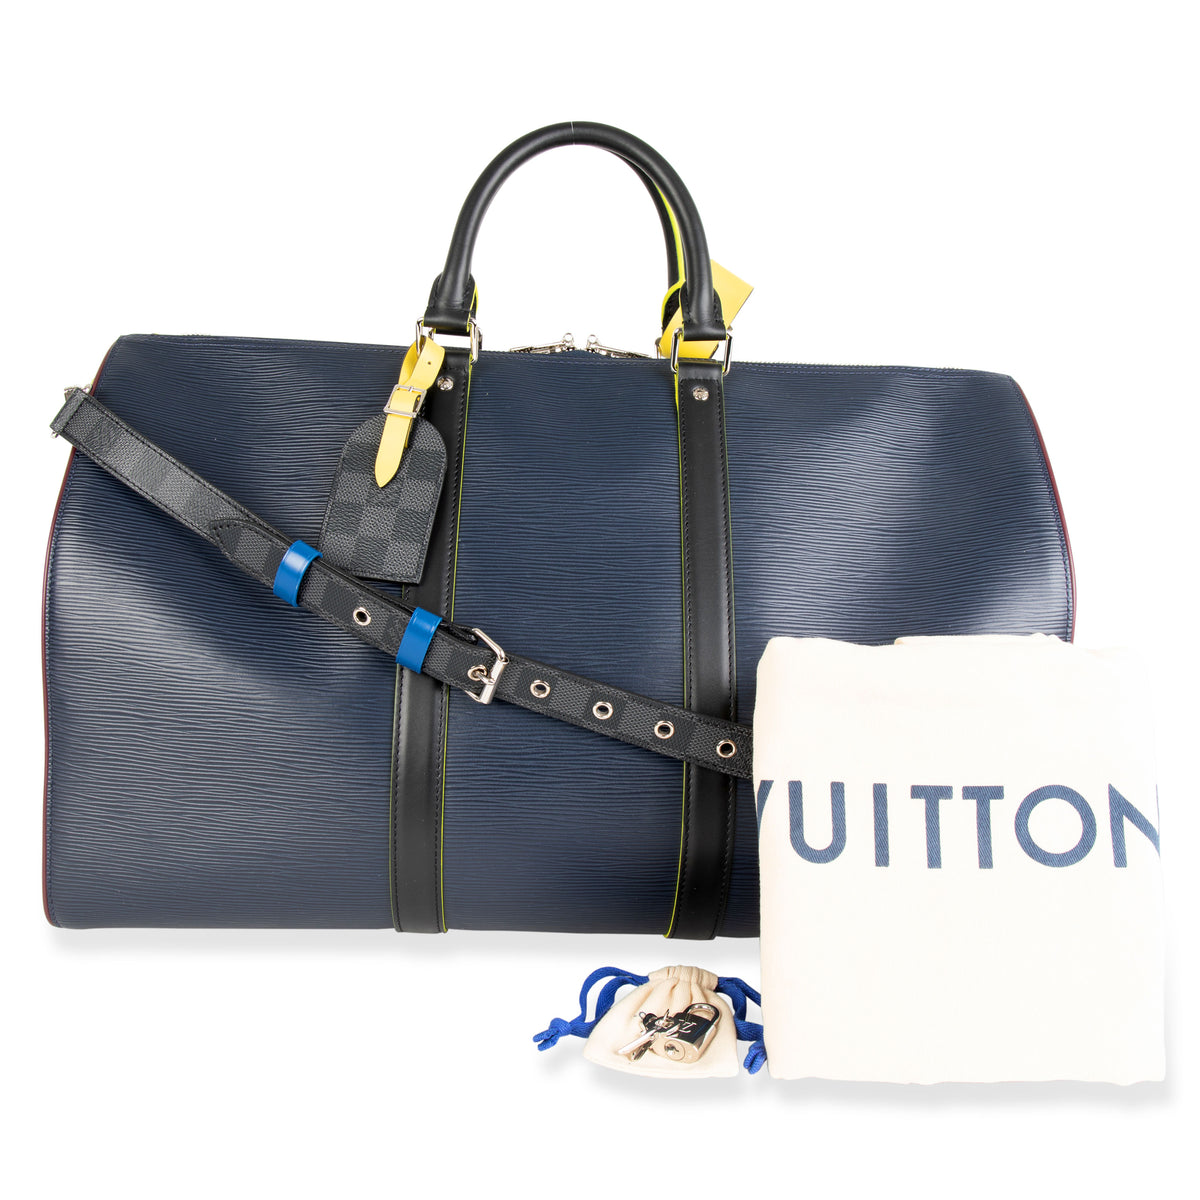 Louis Vuitton Marine Epi Leather Patchwork Graphite Keepall 50 Duffle Bag